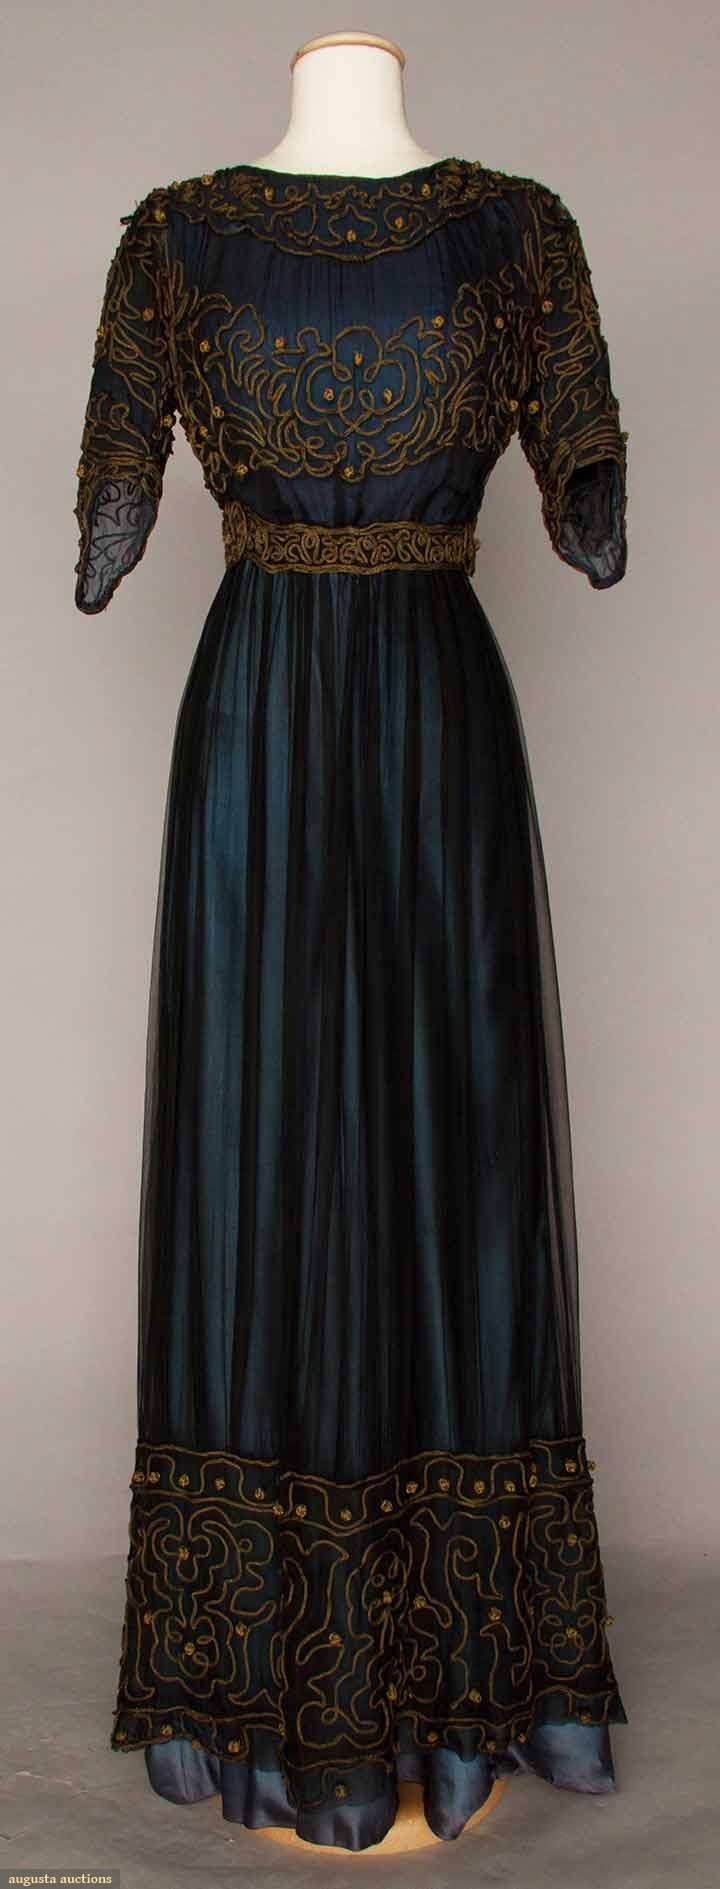 C. 1905 Afternoon Dress Marine blue silk & chiffon dress with gold soutache